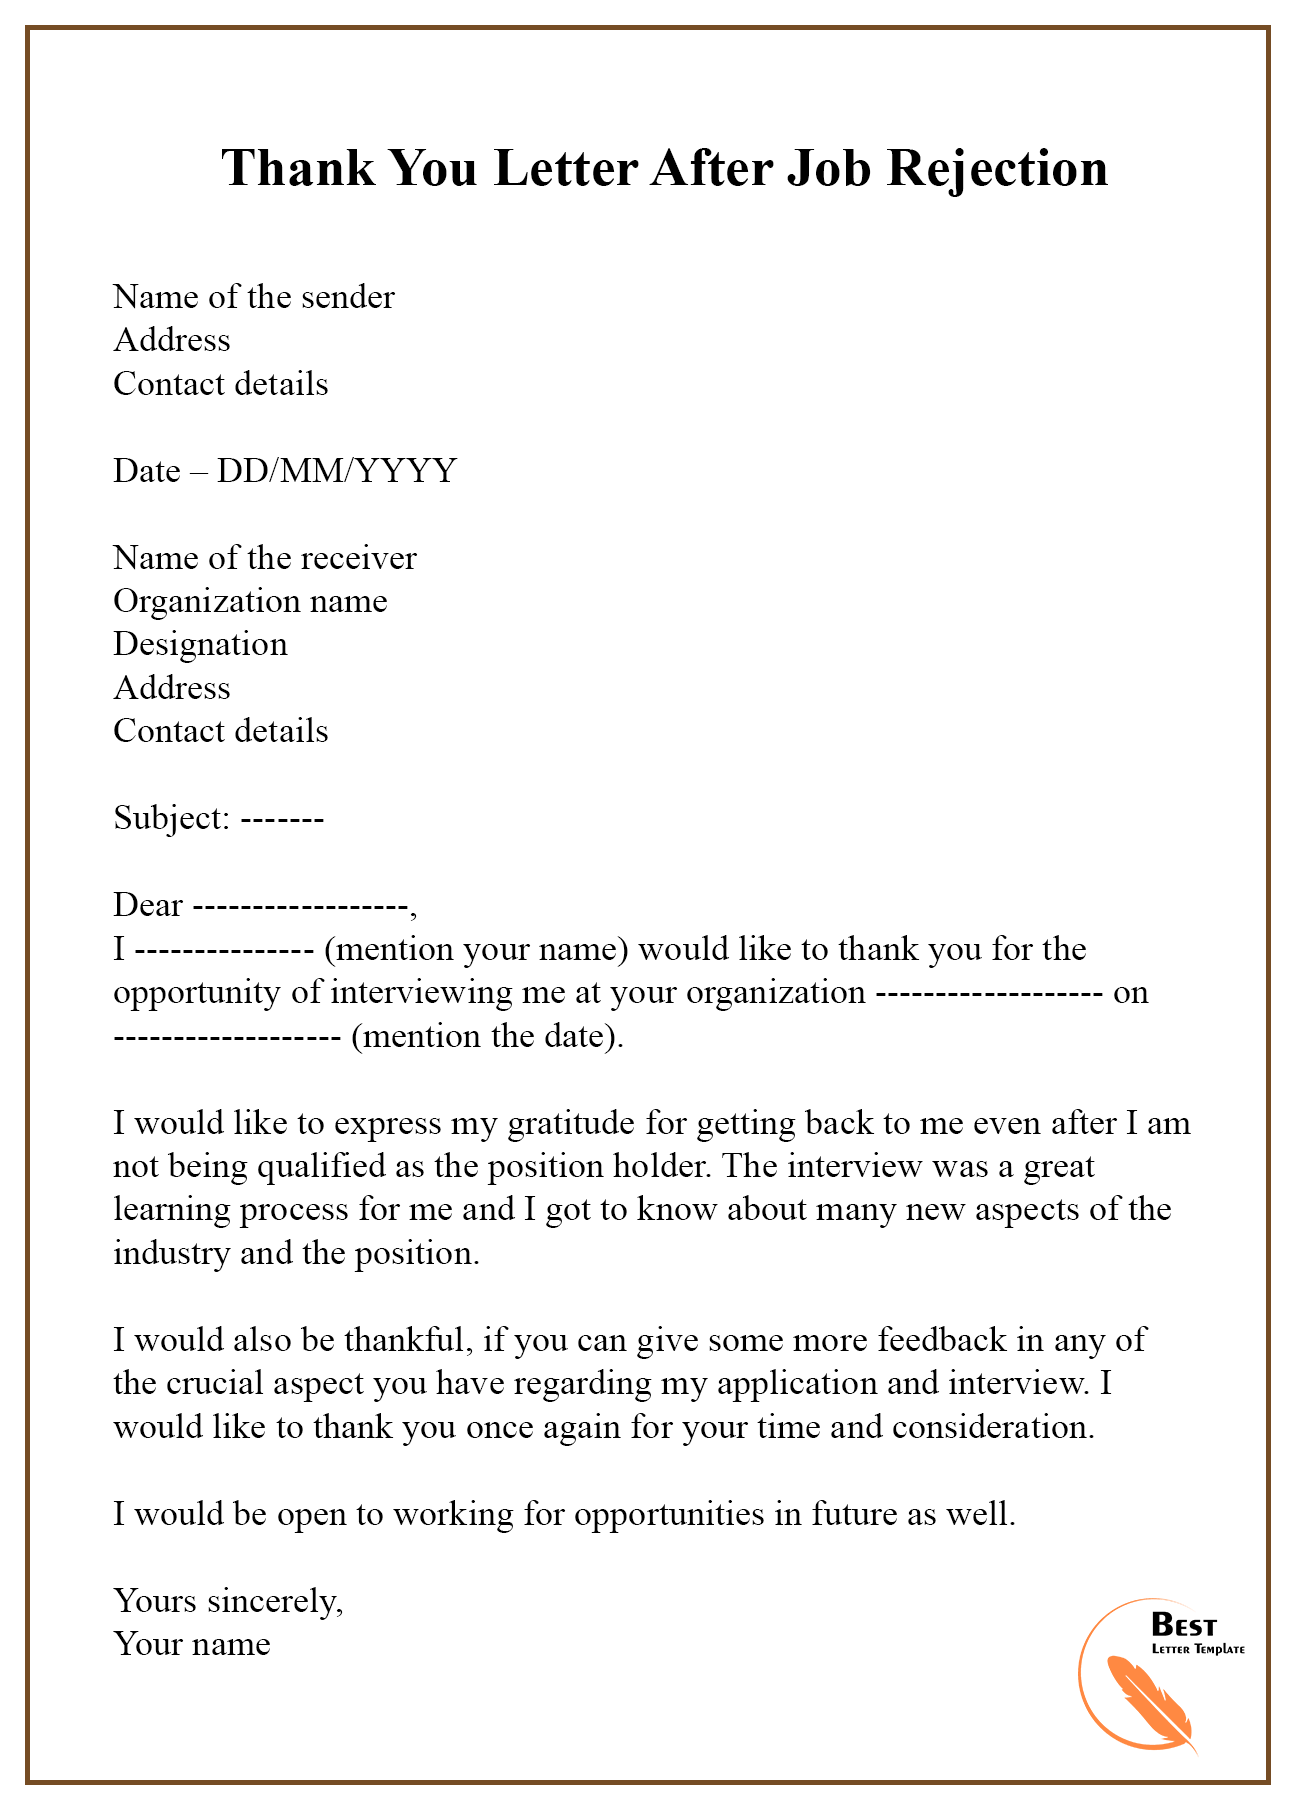 Thank You Letter After Job Rejection from bestlettertemplate.com